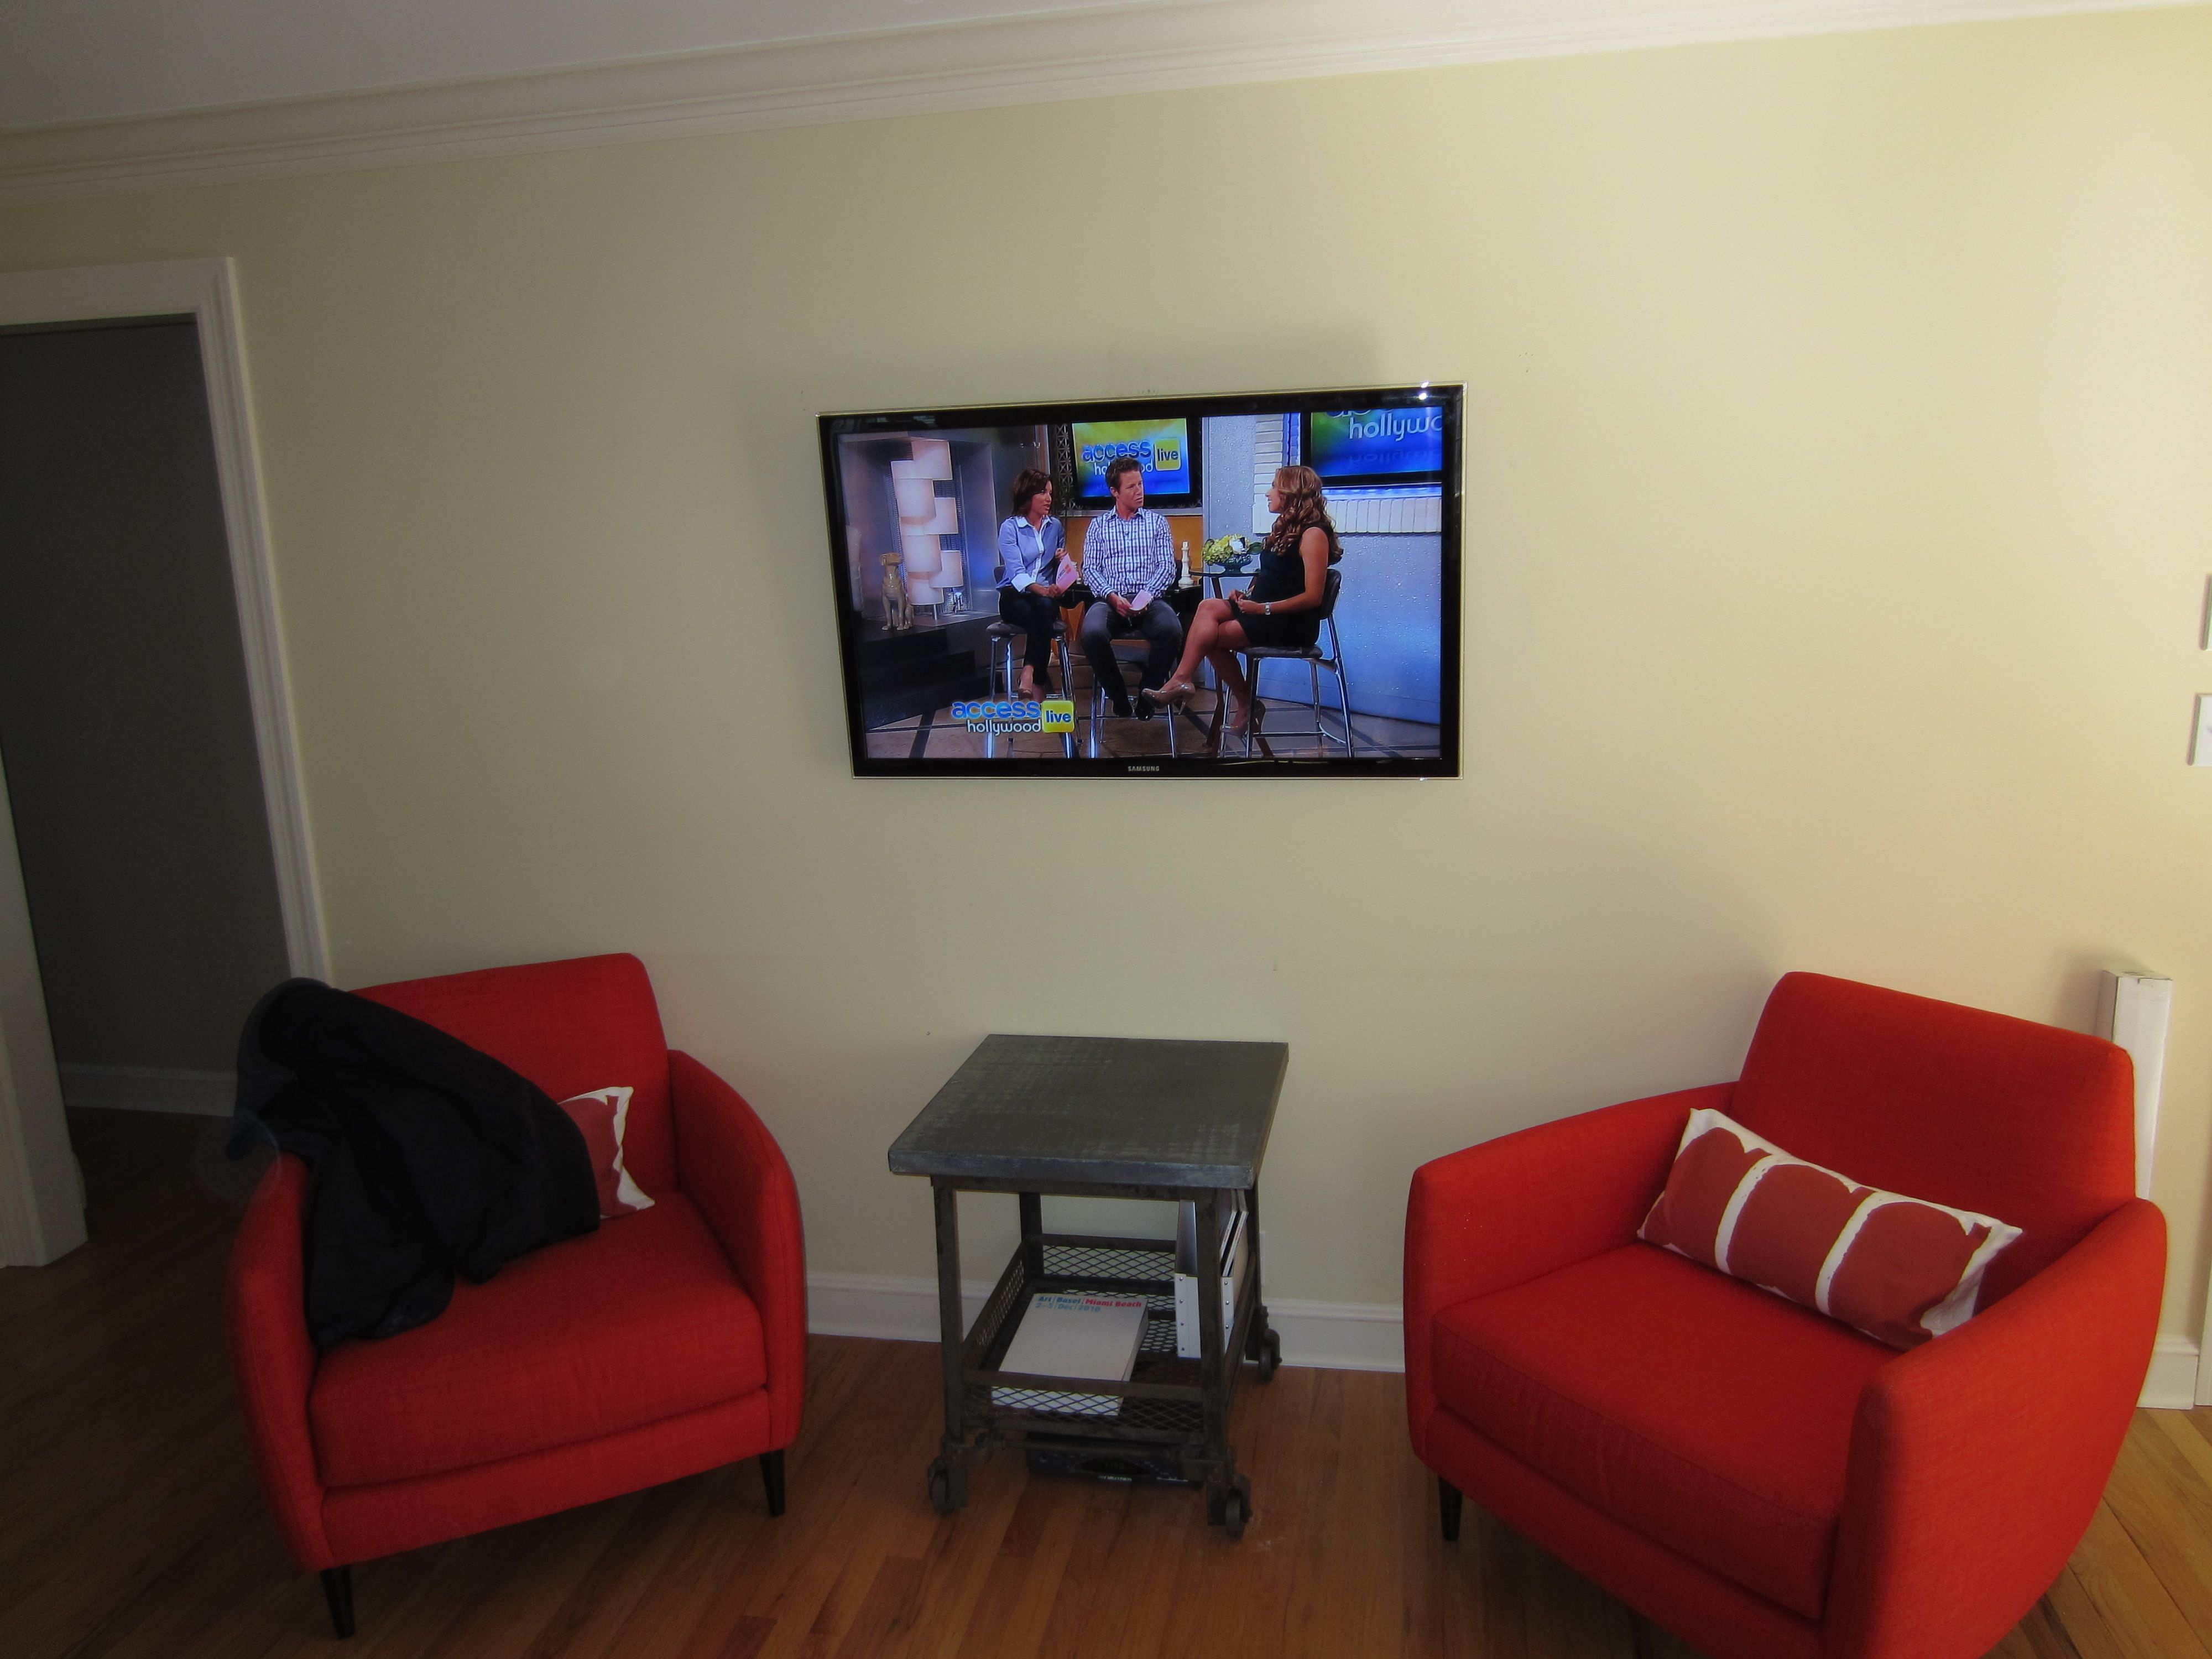 Fairfield Ct Mount Tv On Wall Richey Group Llc Audio Video Experts Living Dining Room Home Theater Installation Mounted Tv